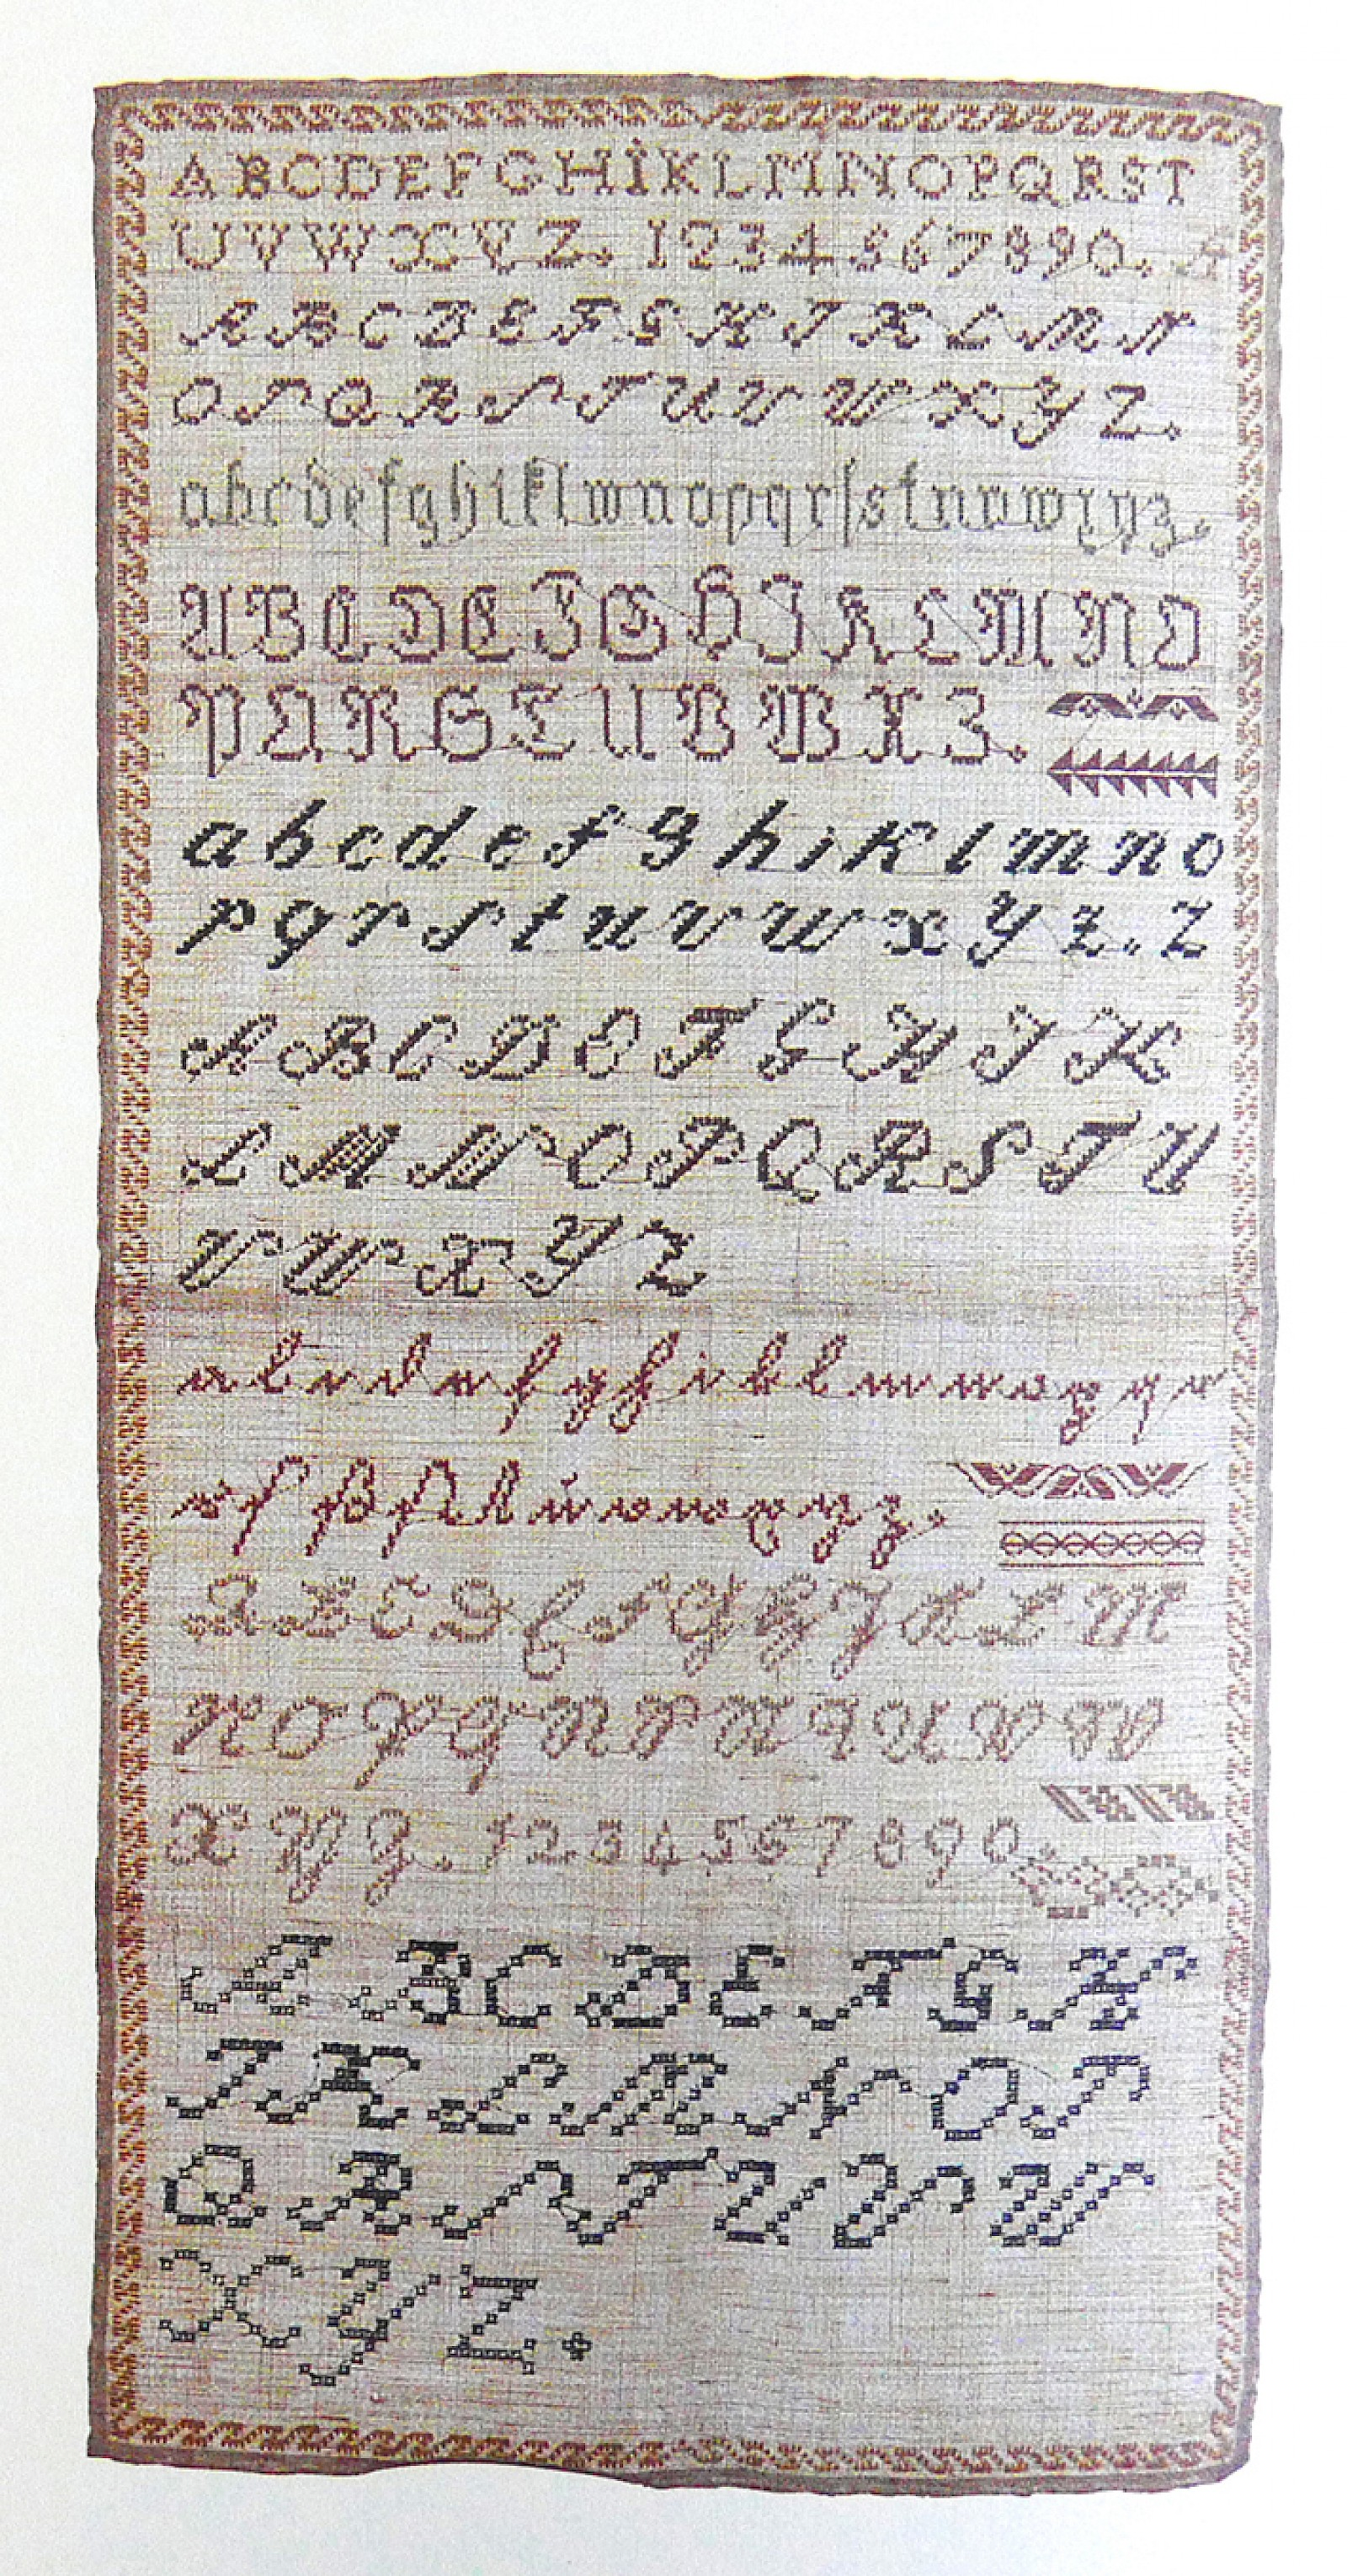 Image - Mustertuch, early 19 th century, alphabets